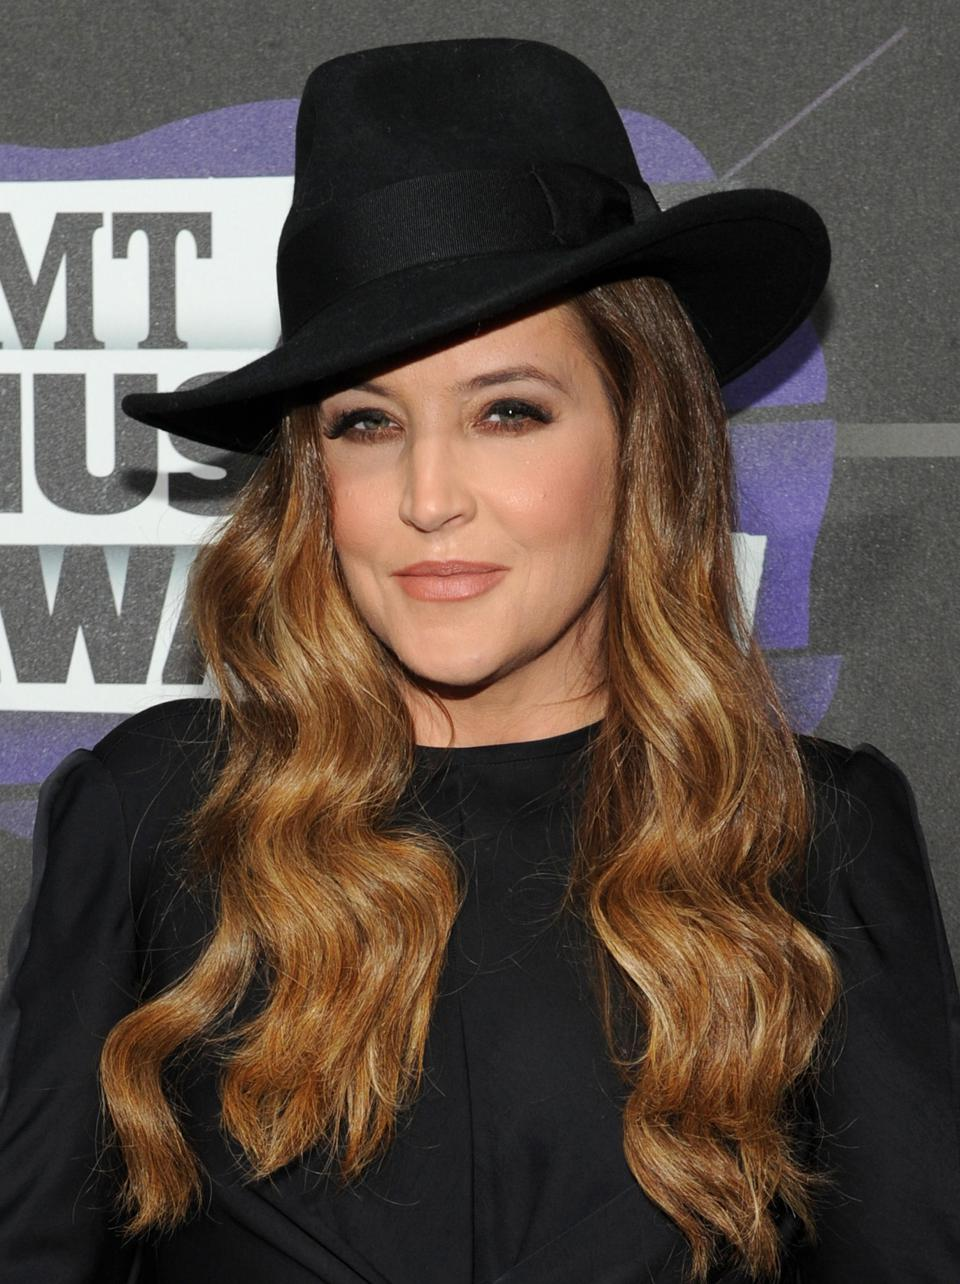 Lisa Marie Presley & The Rise And Fall Of The Elvis Estate